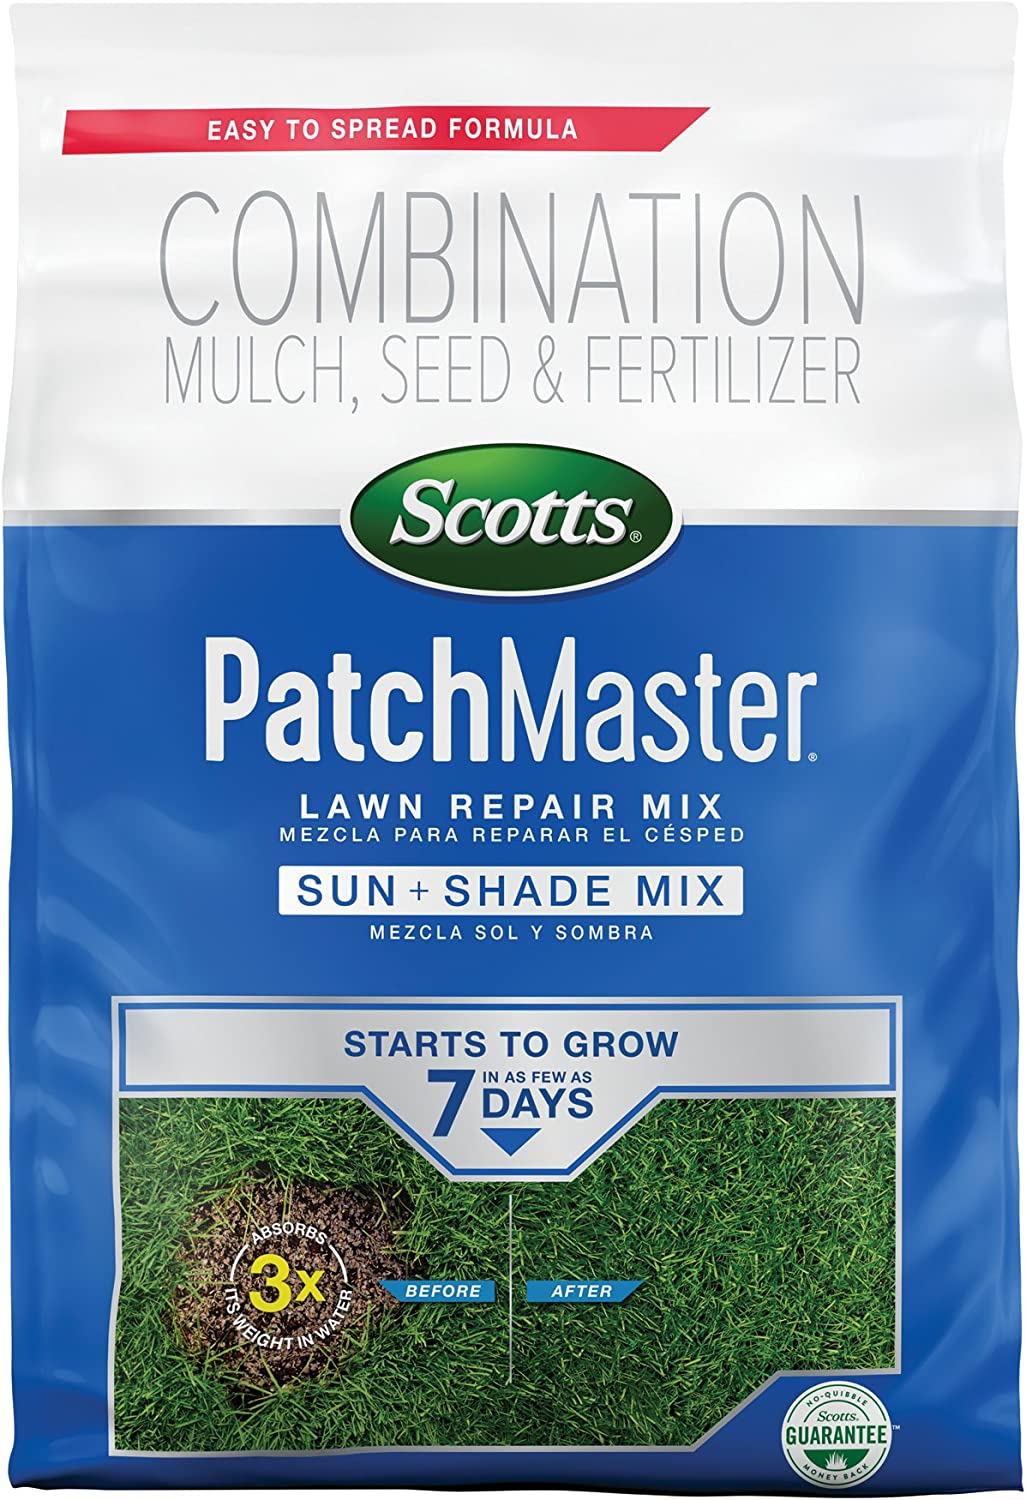 Scotts PatchMaster Lawn Repair Mix Sun and Shade Mix, 4.75 lb